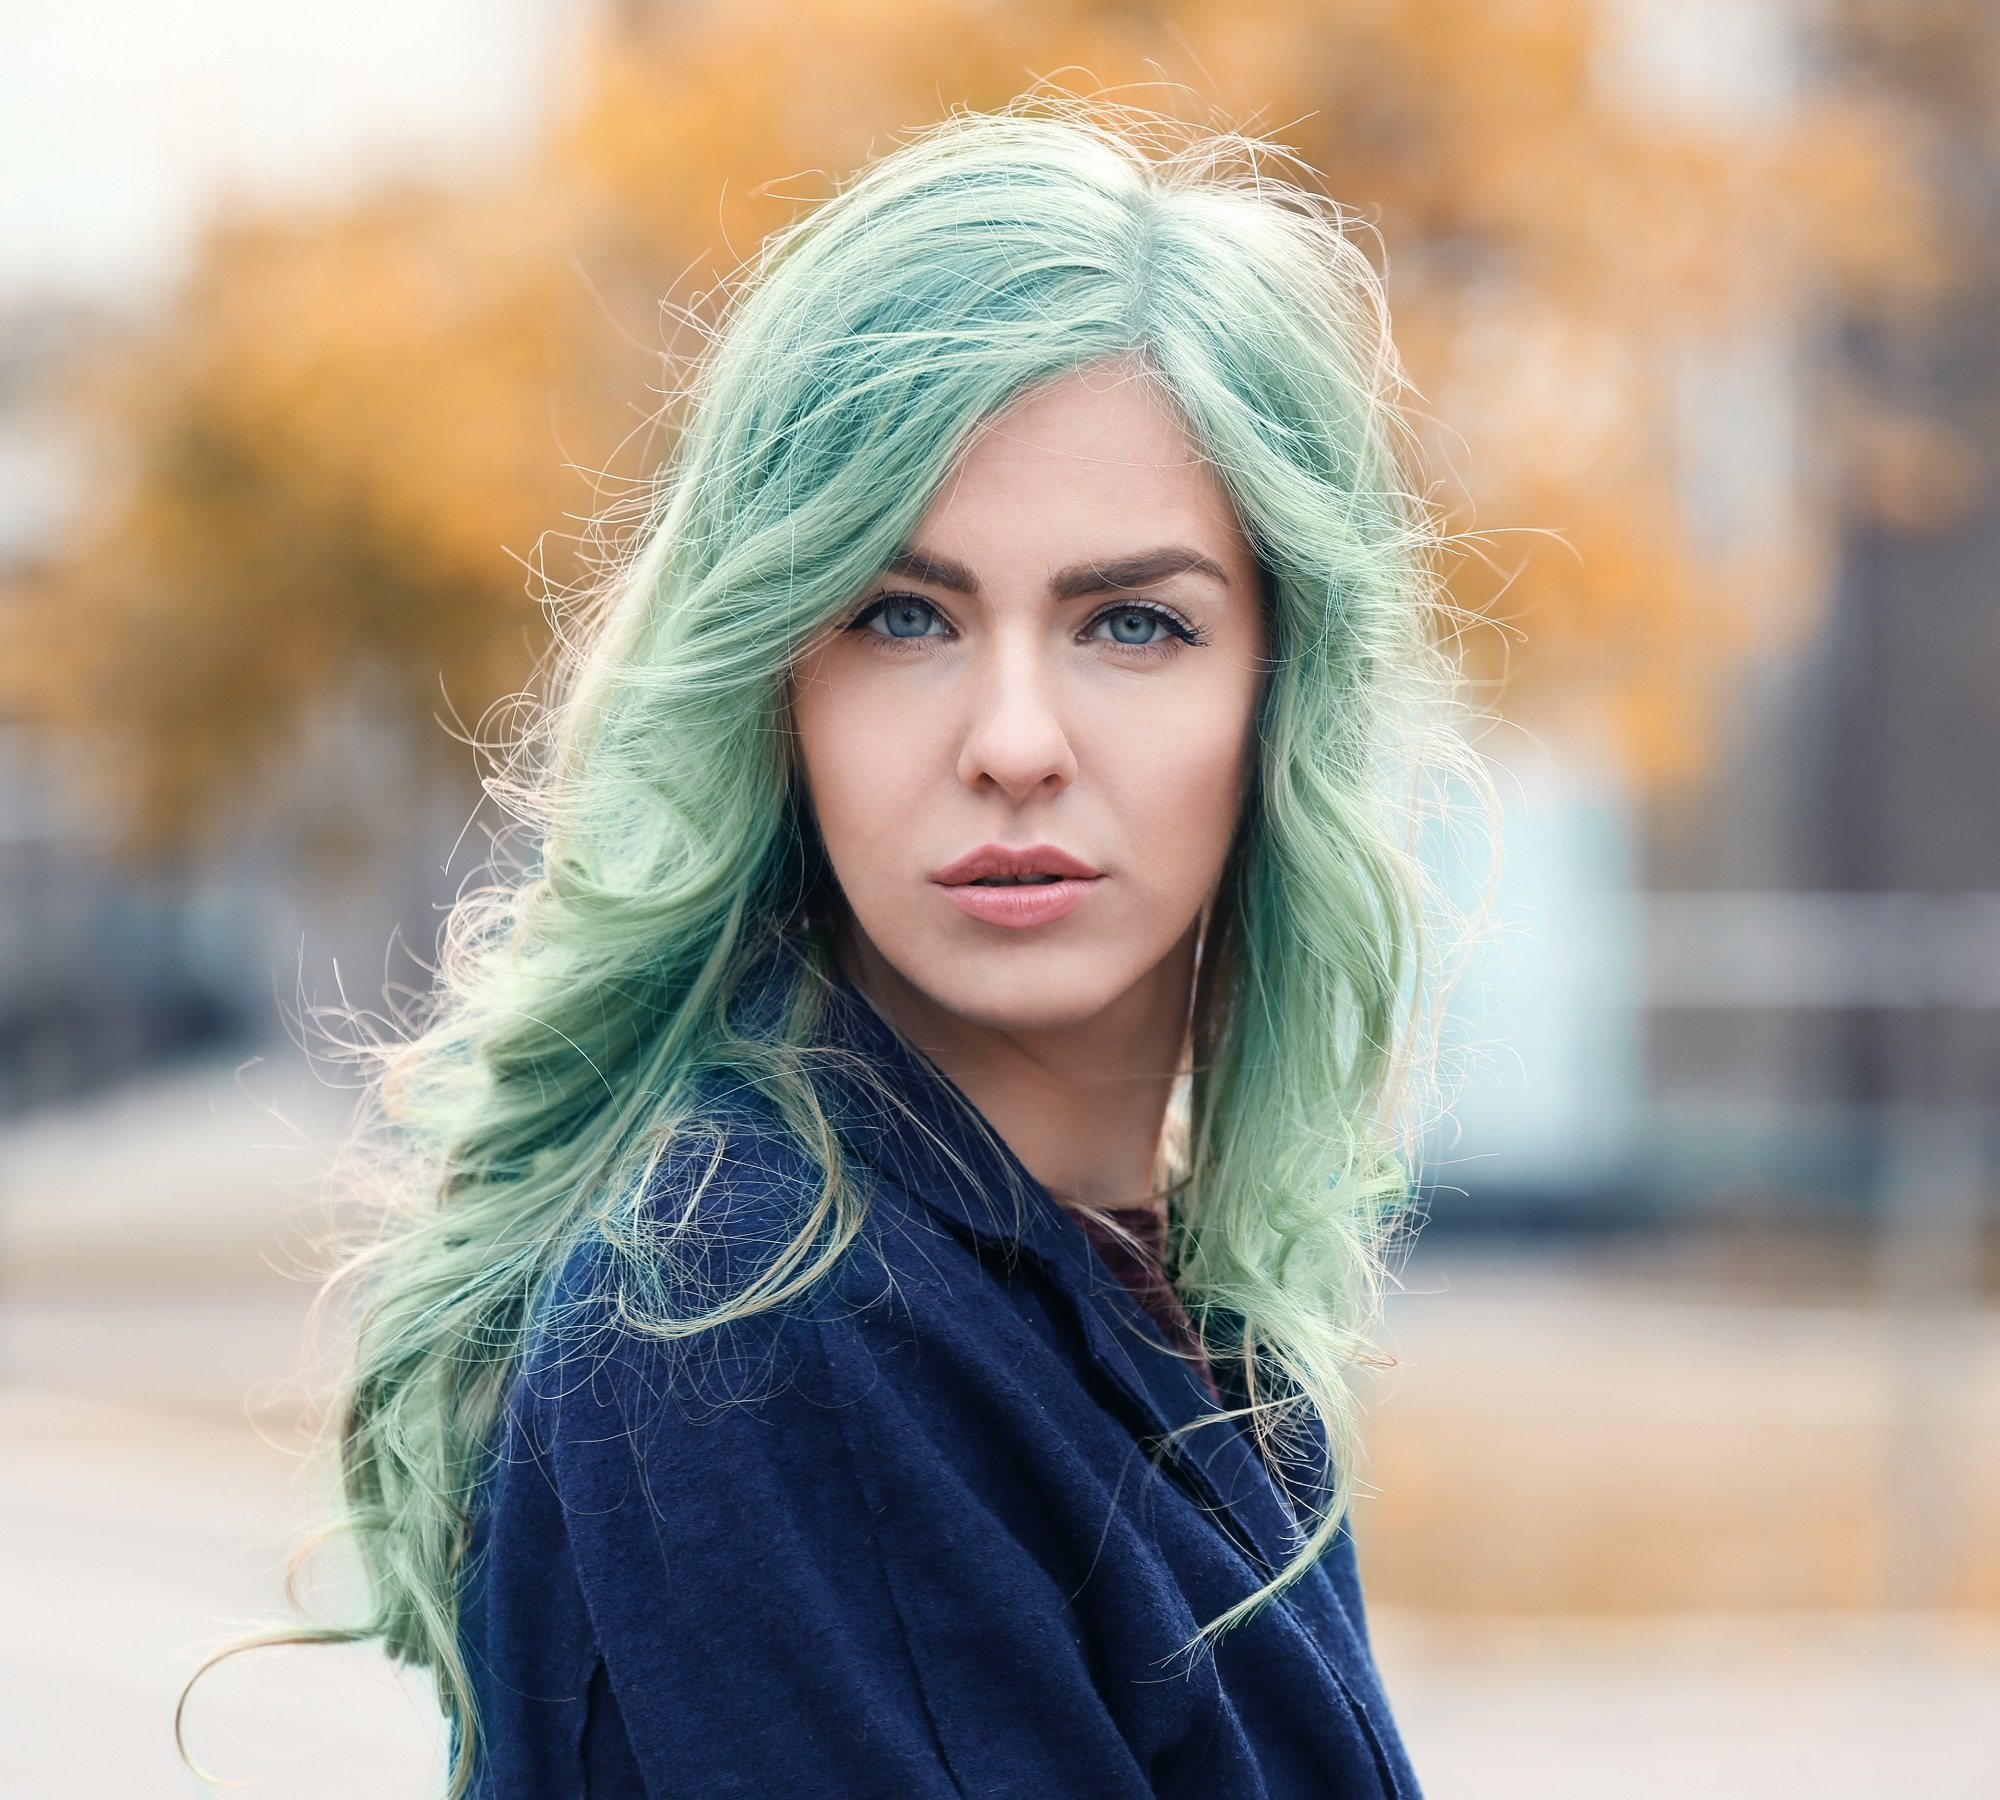 Vibrant hair color: Fair-skinned woman with long mint green hair wearing a blue jacket outdoors